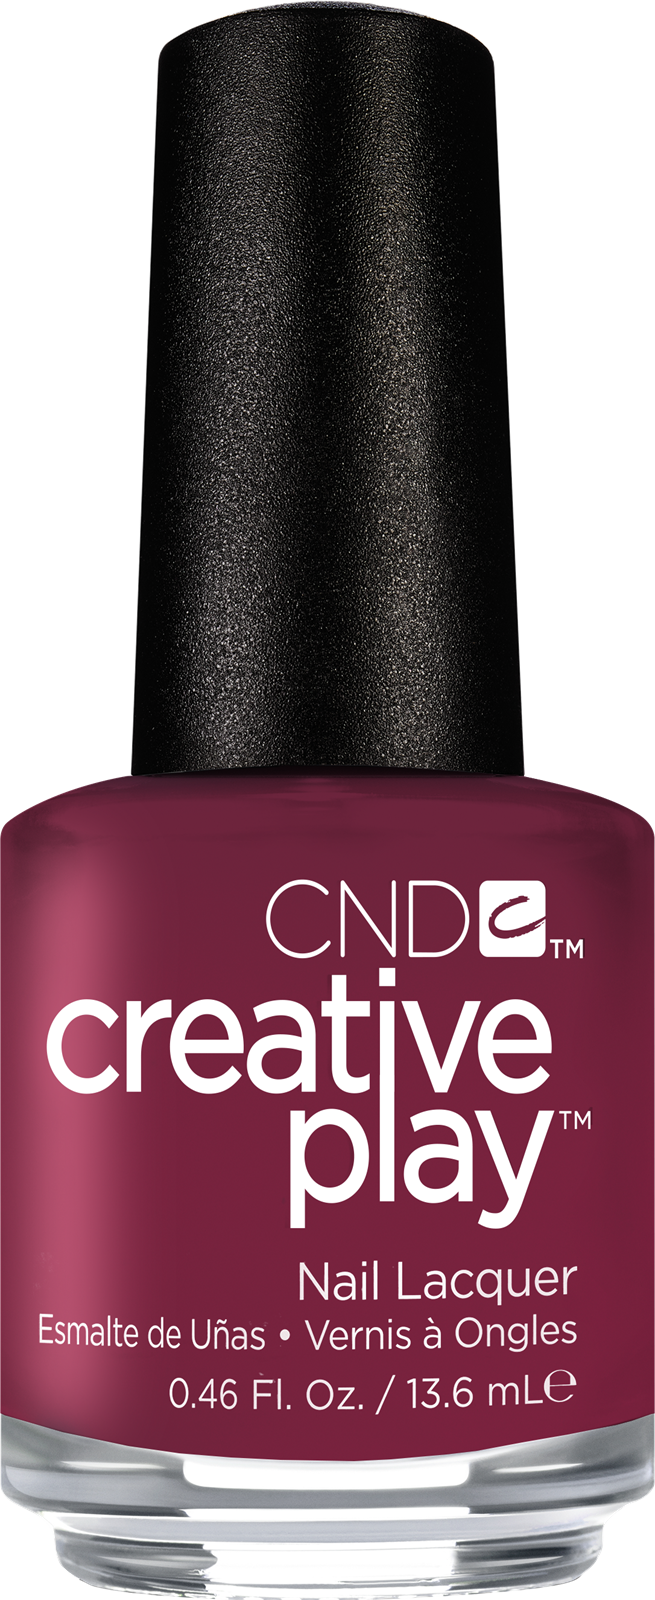 Afbeelding van CND ™ Creative Play Berry Busy